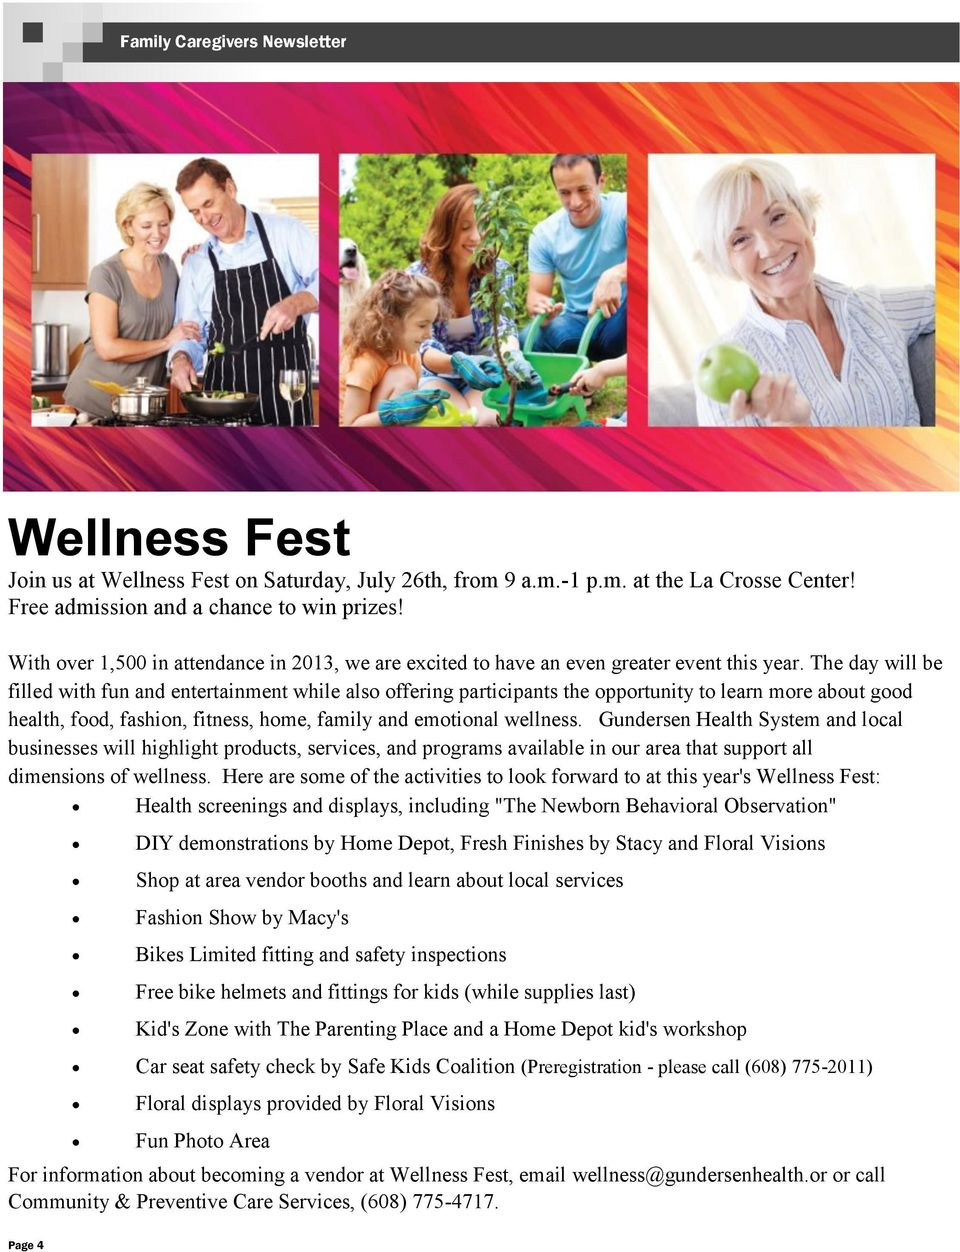 The day will be filled with fun and entertainment while also offering participants the opportunity to learn more about good health, food, fashion, fitness, home, family and emotional wellness.